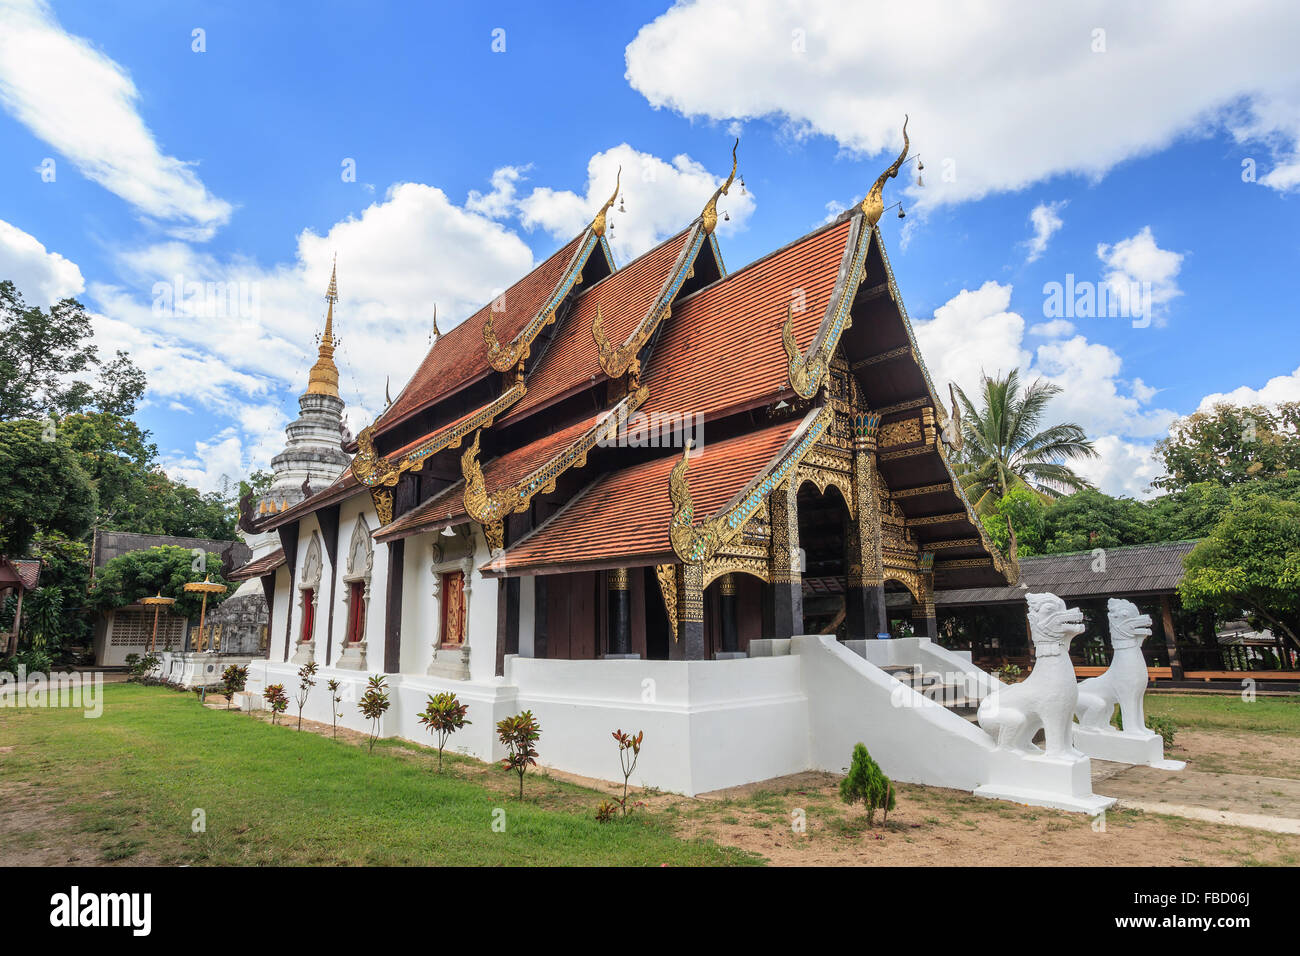 old temple at Chiang mai - Thailand - Stock Image